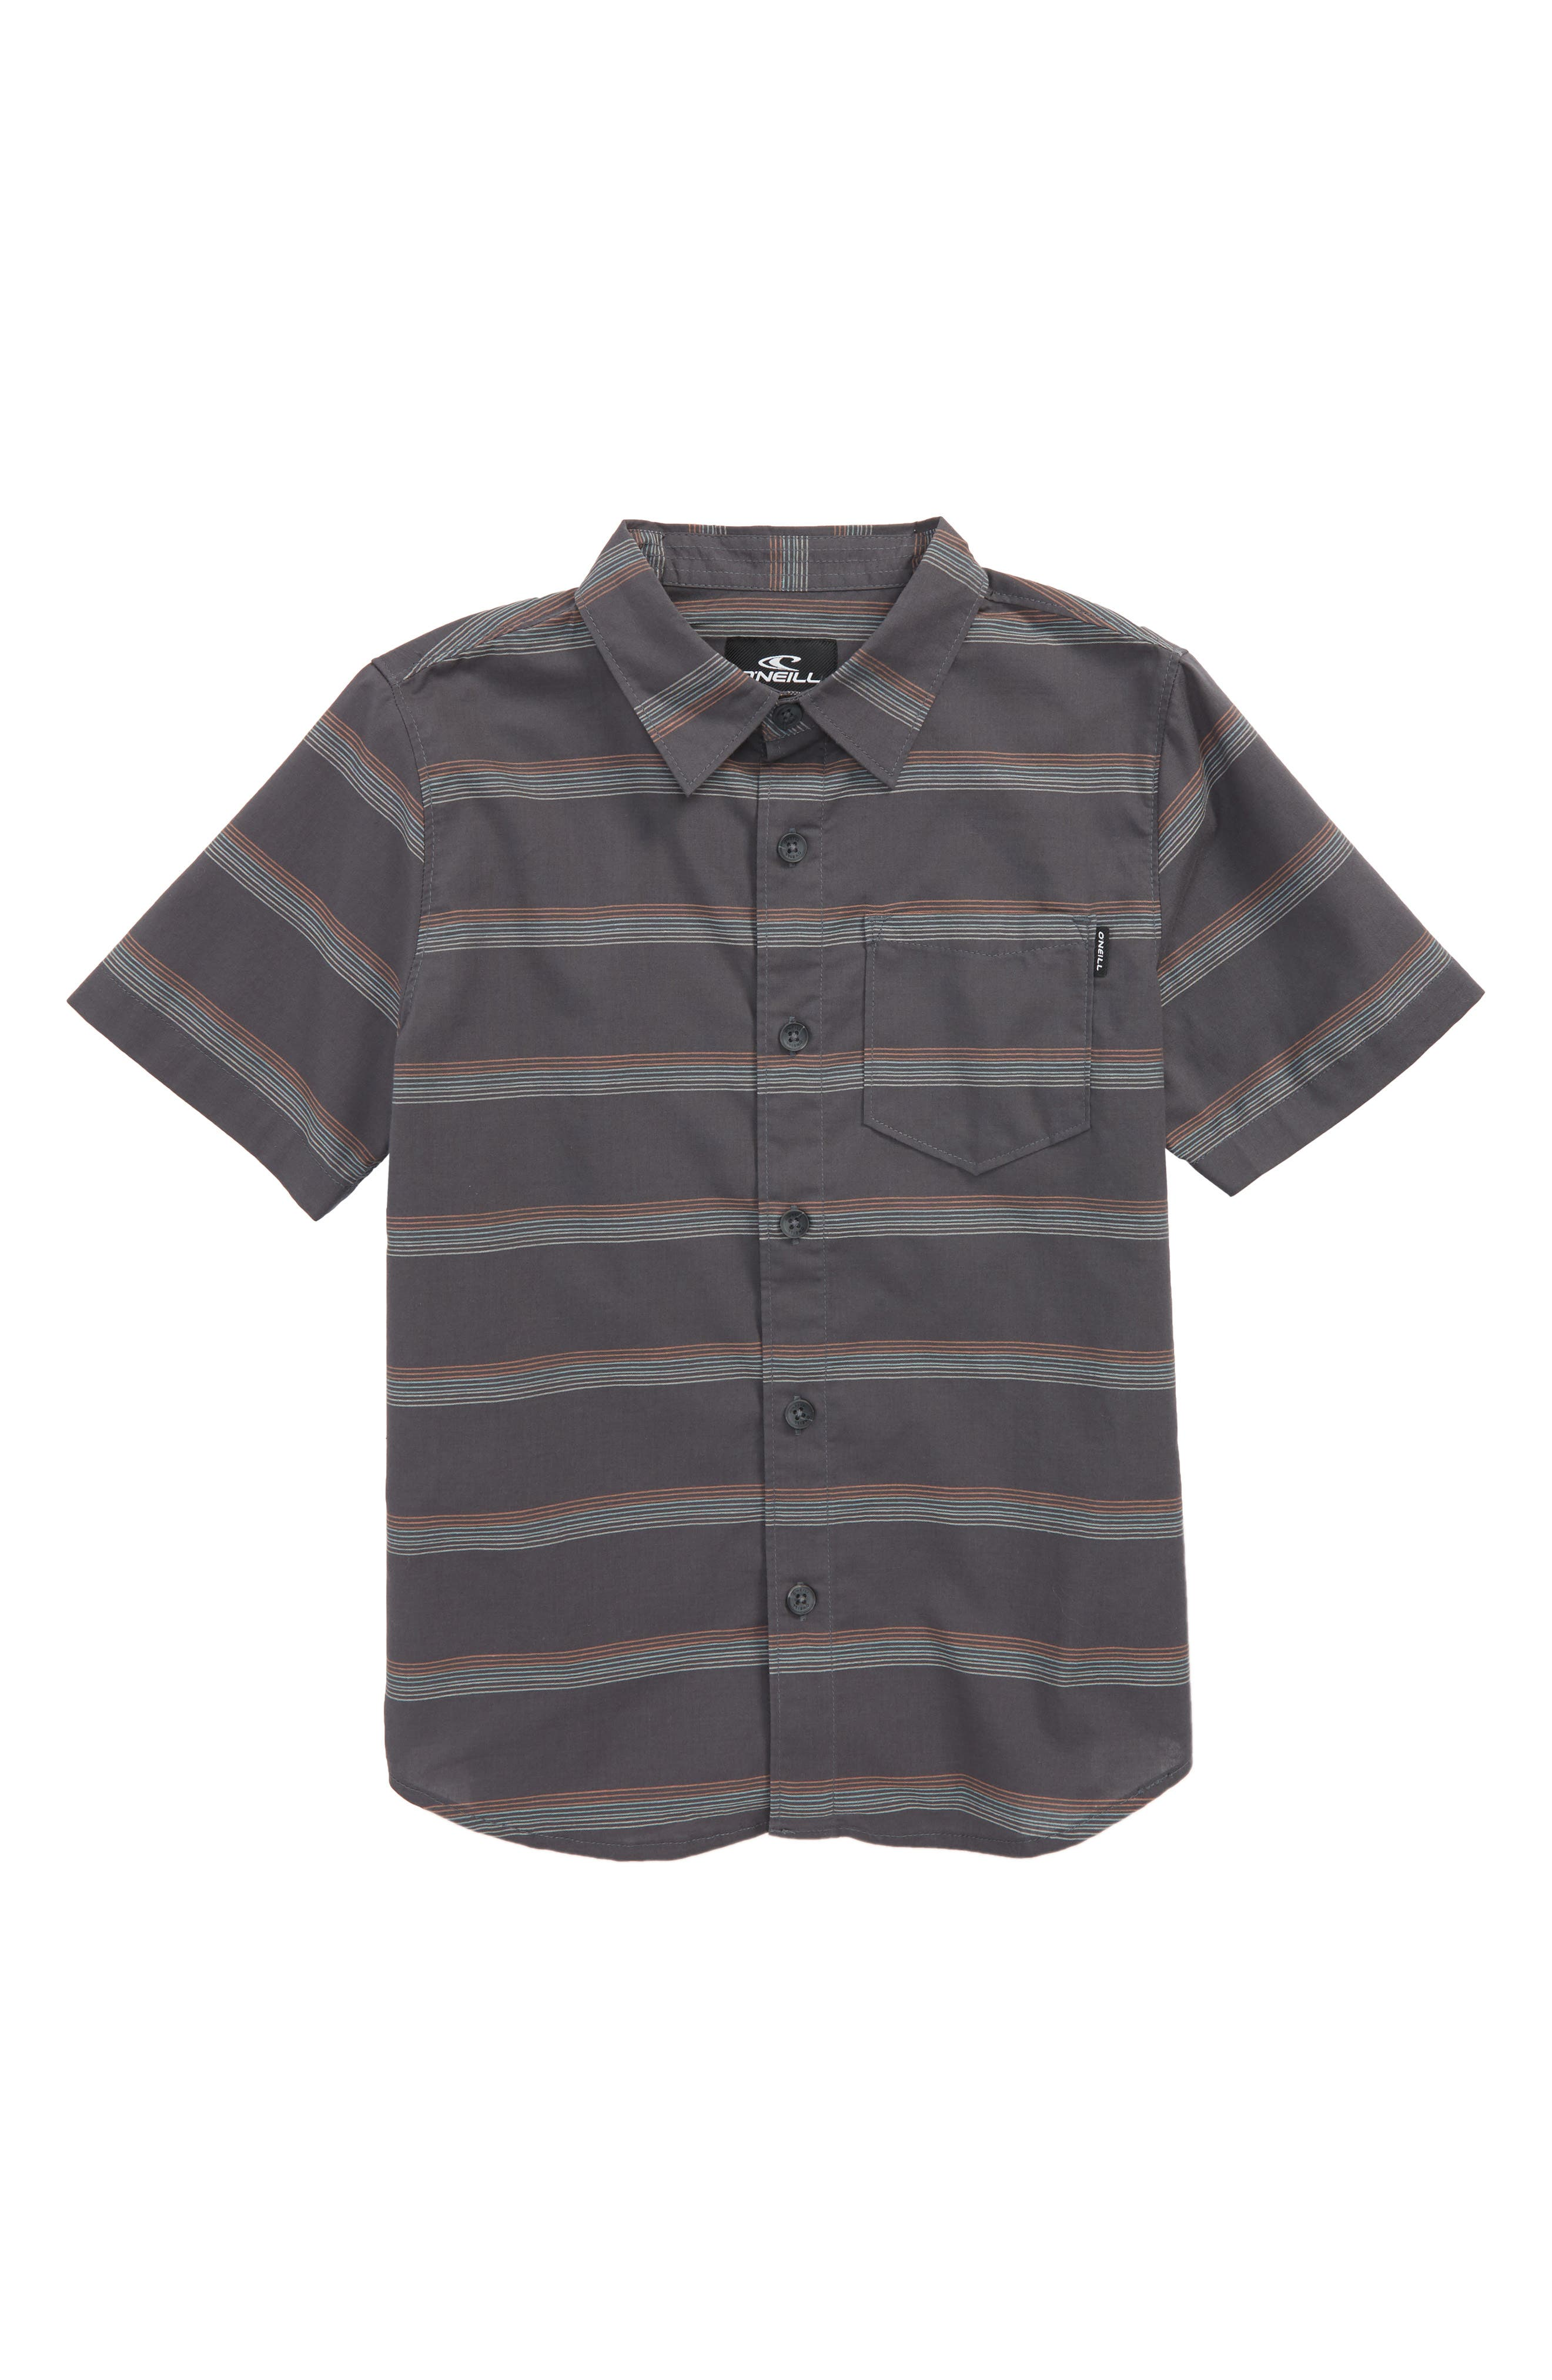 Pickett Woven Shirt,                         Main,                         color, Asphalt